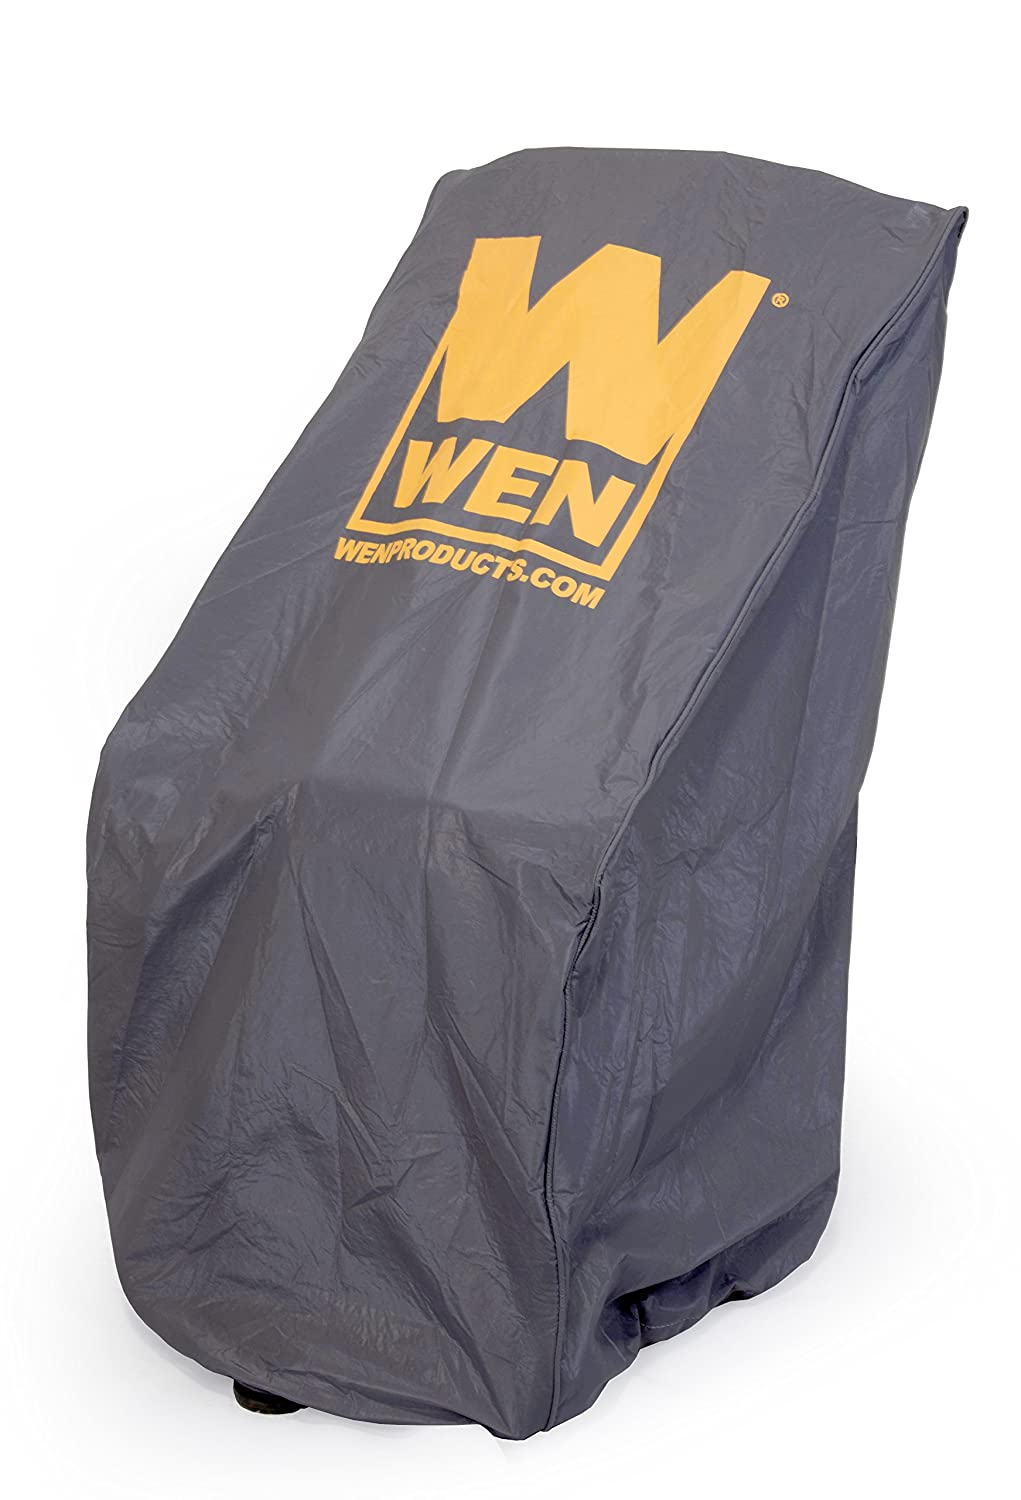 WEN PW31C Universal Weatherproof Pressure Washer Cover